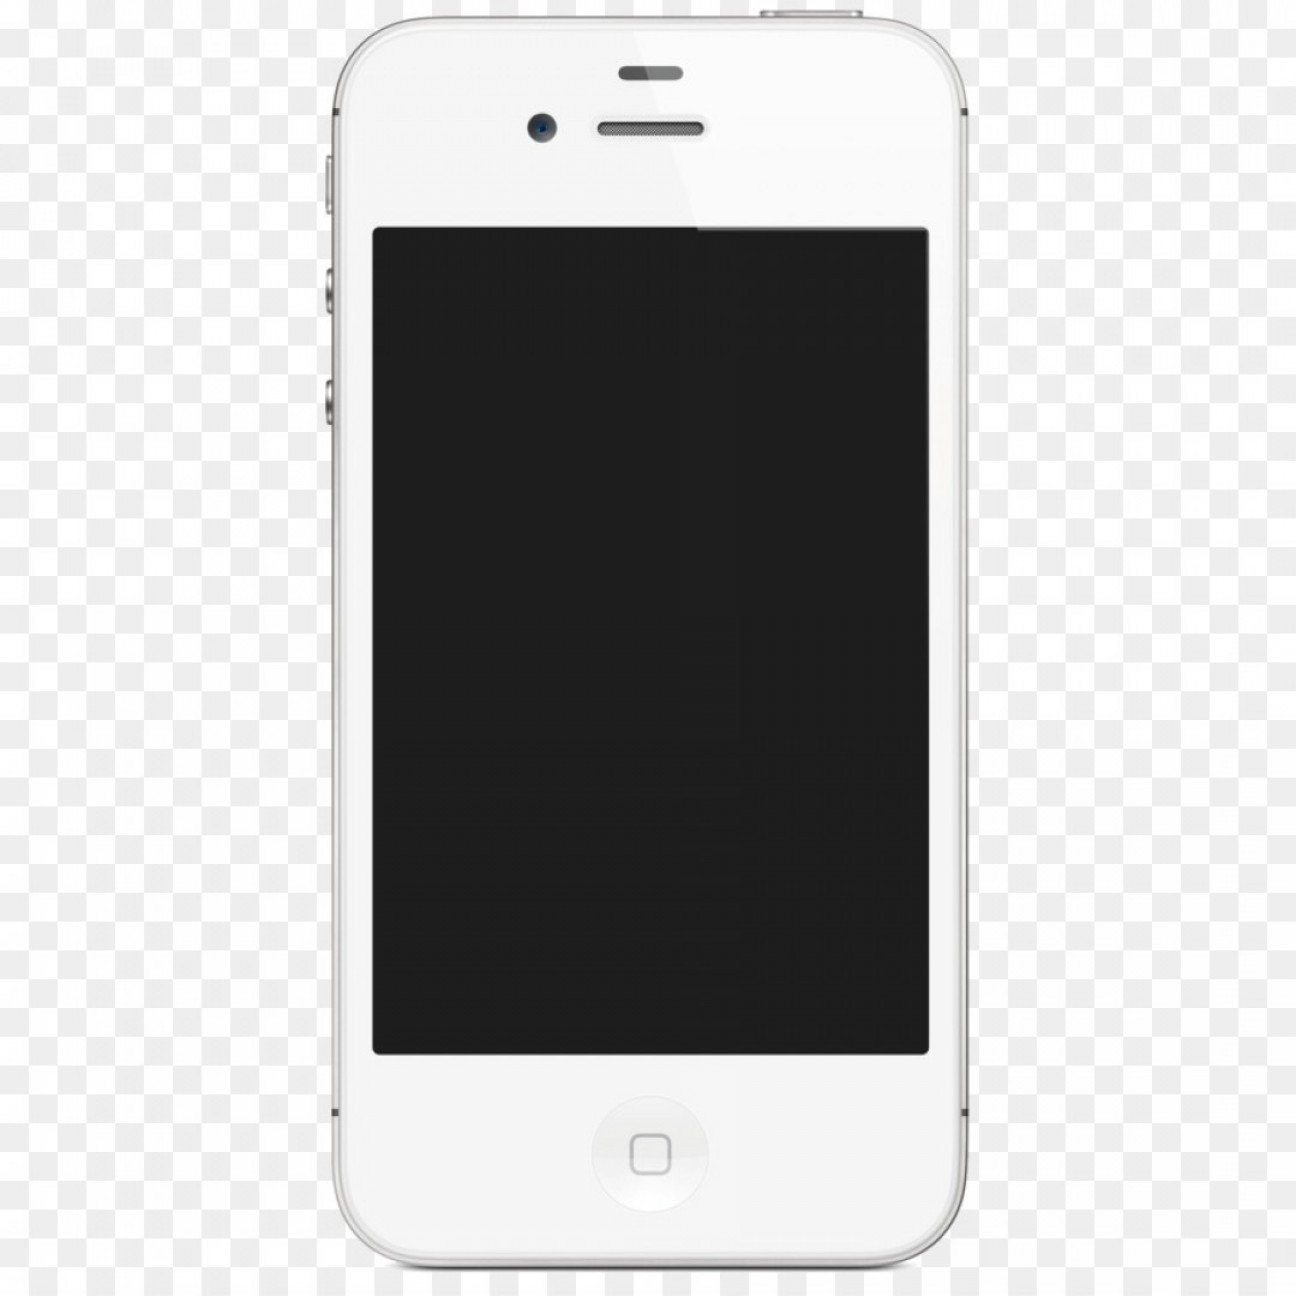 White IPhone Vector Png: Png Iphone S Iphone S Iphone C Iphone X Vector Ipho